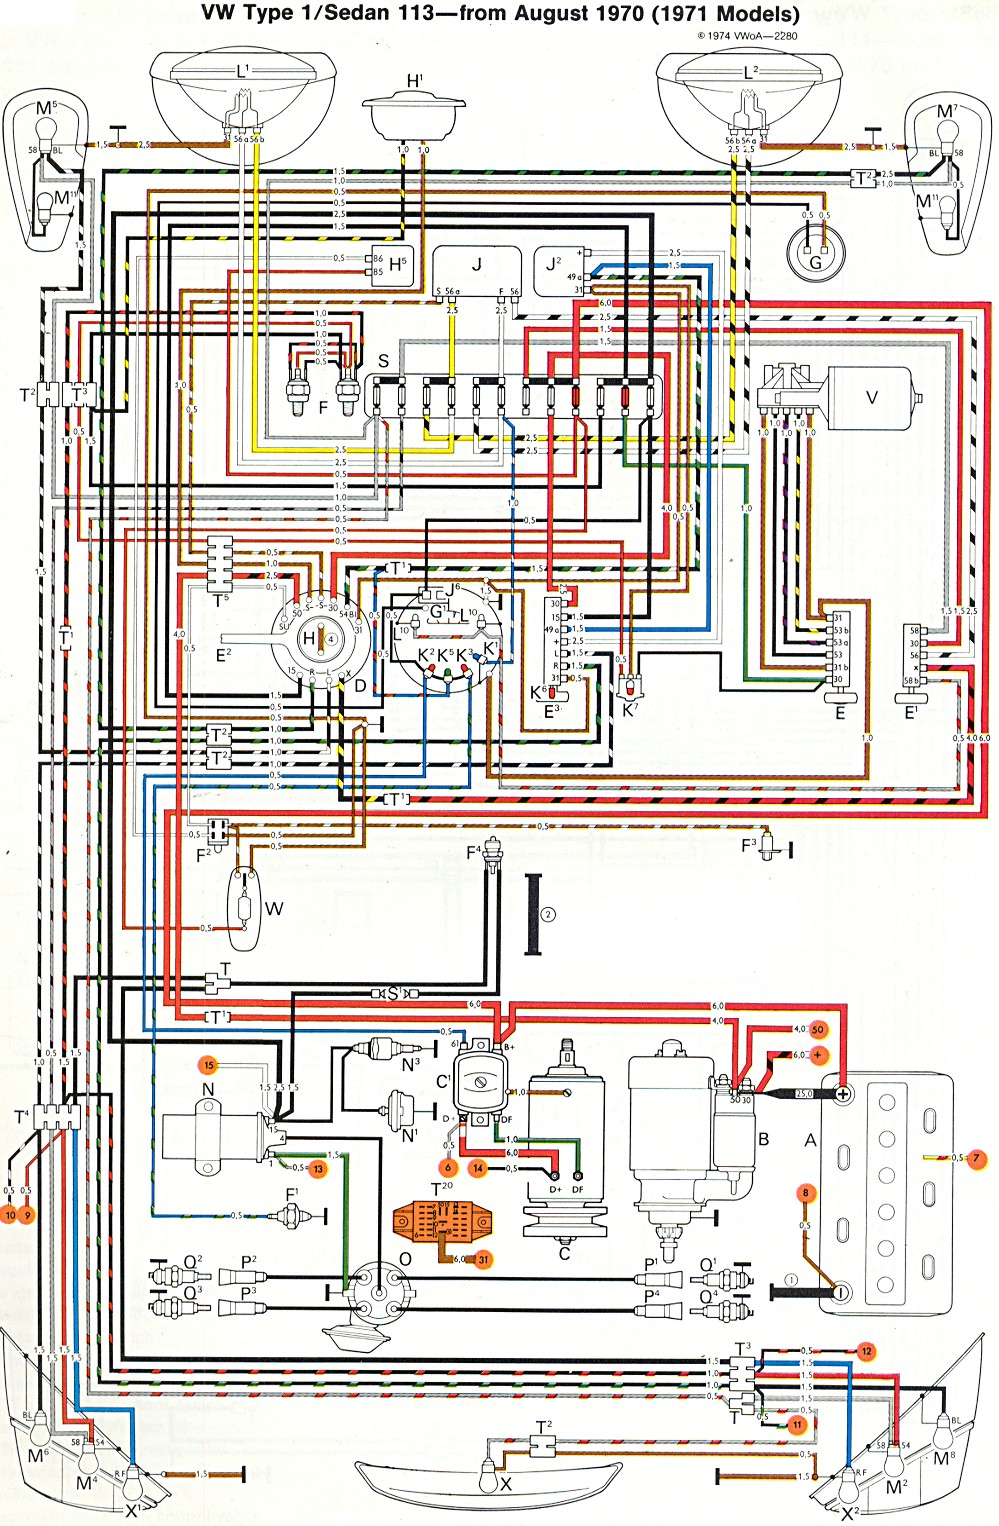 1973 Vw Engine Diagram Reinvent Your Wiring Air Cooled Ignition Coil 71 Volkswagen Detailed Schematics Rh Keyplusrubber Com Super Beetle